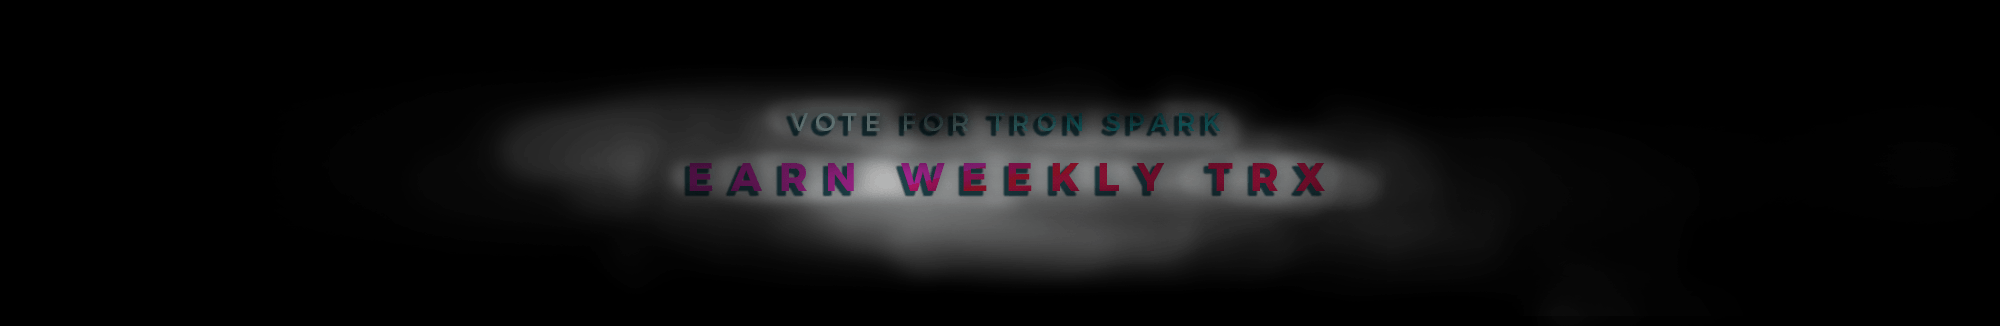 Vote for Tron Spark